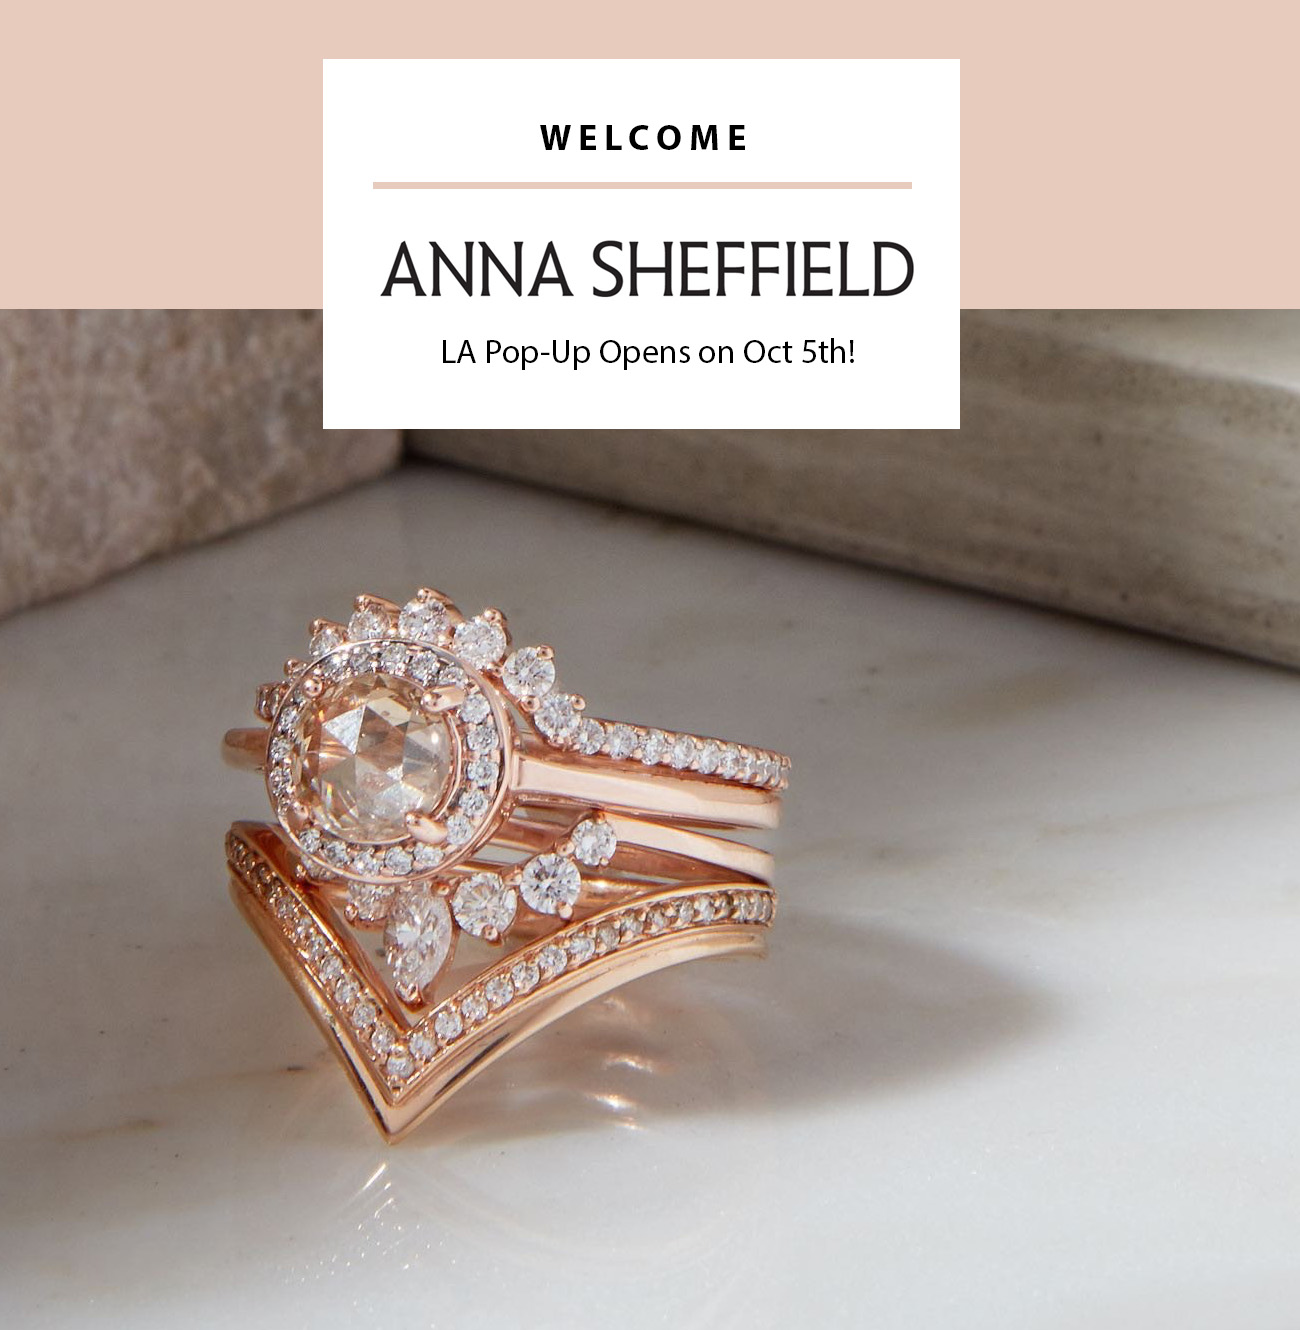 Anna Sheffield LA Pop-Up